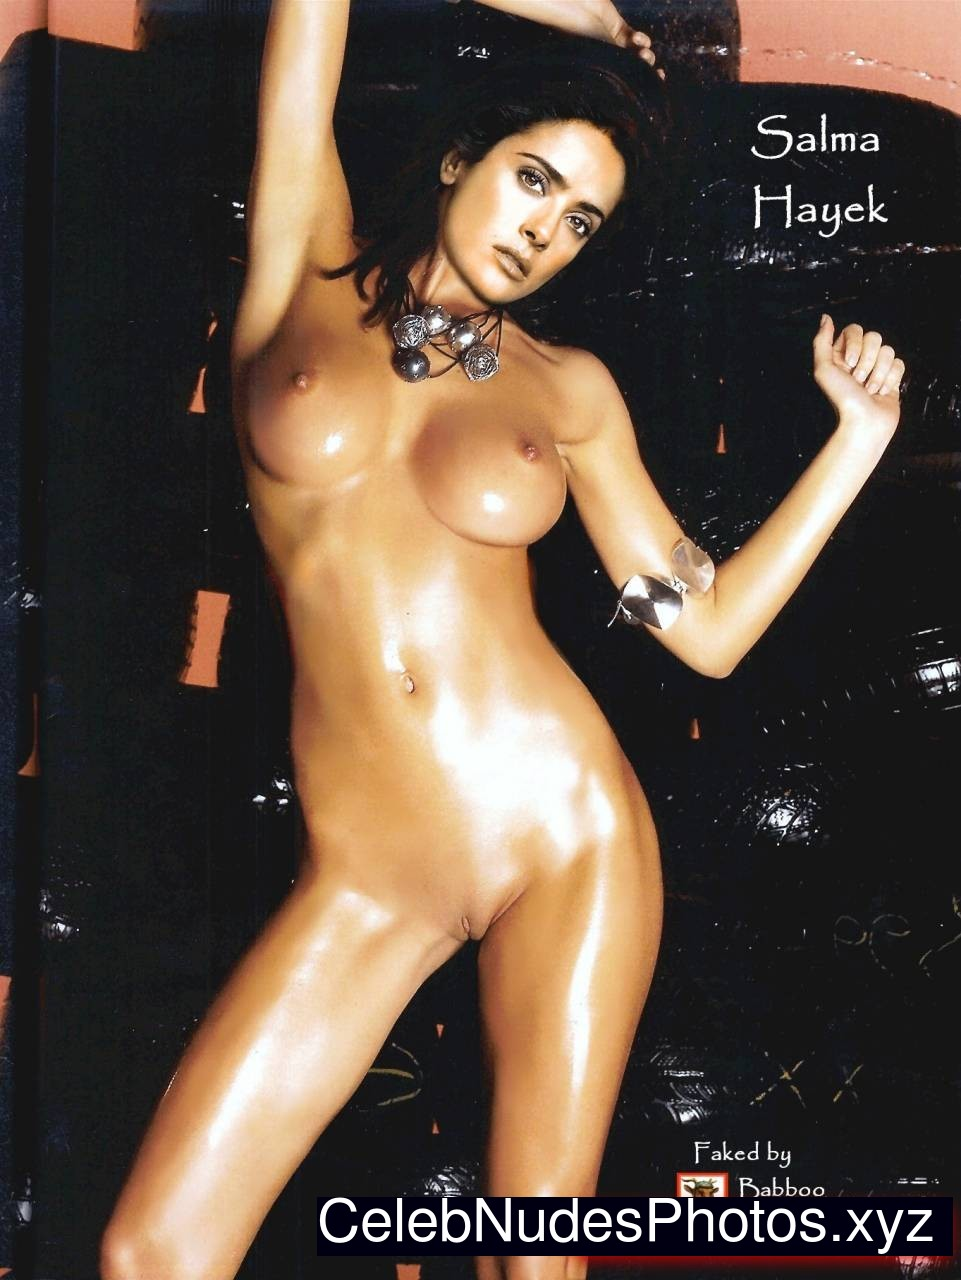 Salma Hayek Celebrities Naked sexy 10